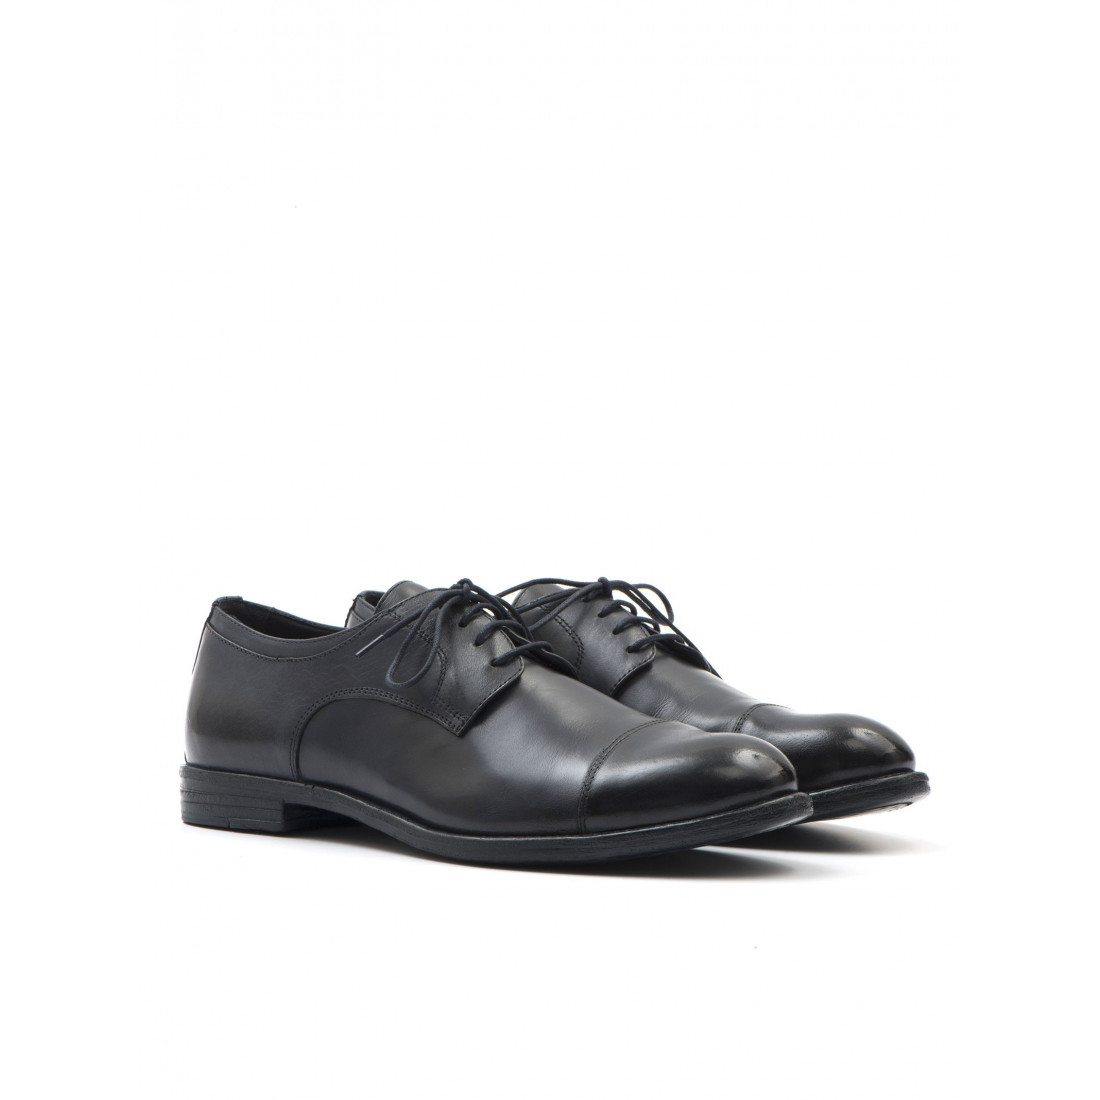 monk straps man hundred m 283  02 bufalo blu 1127